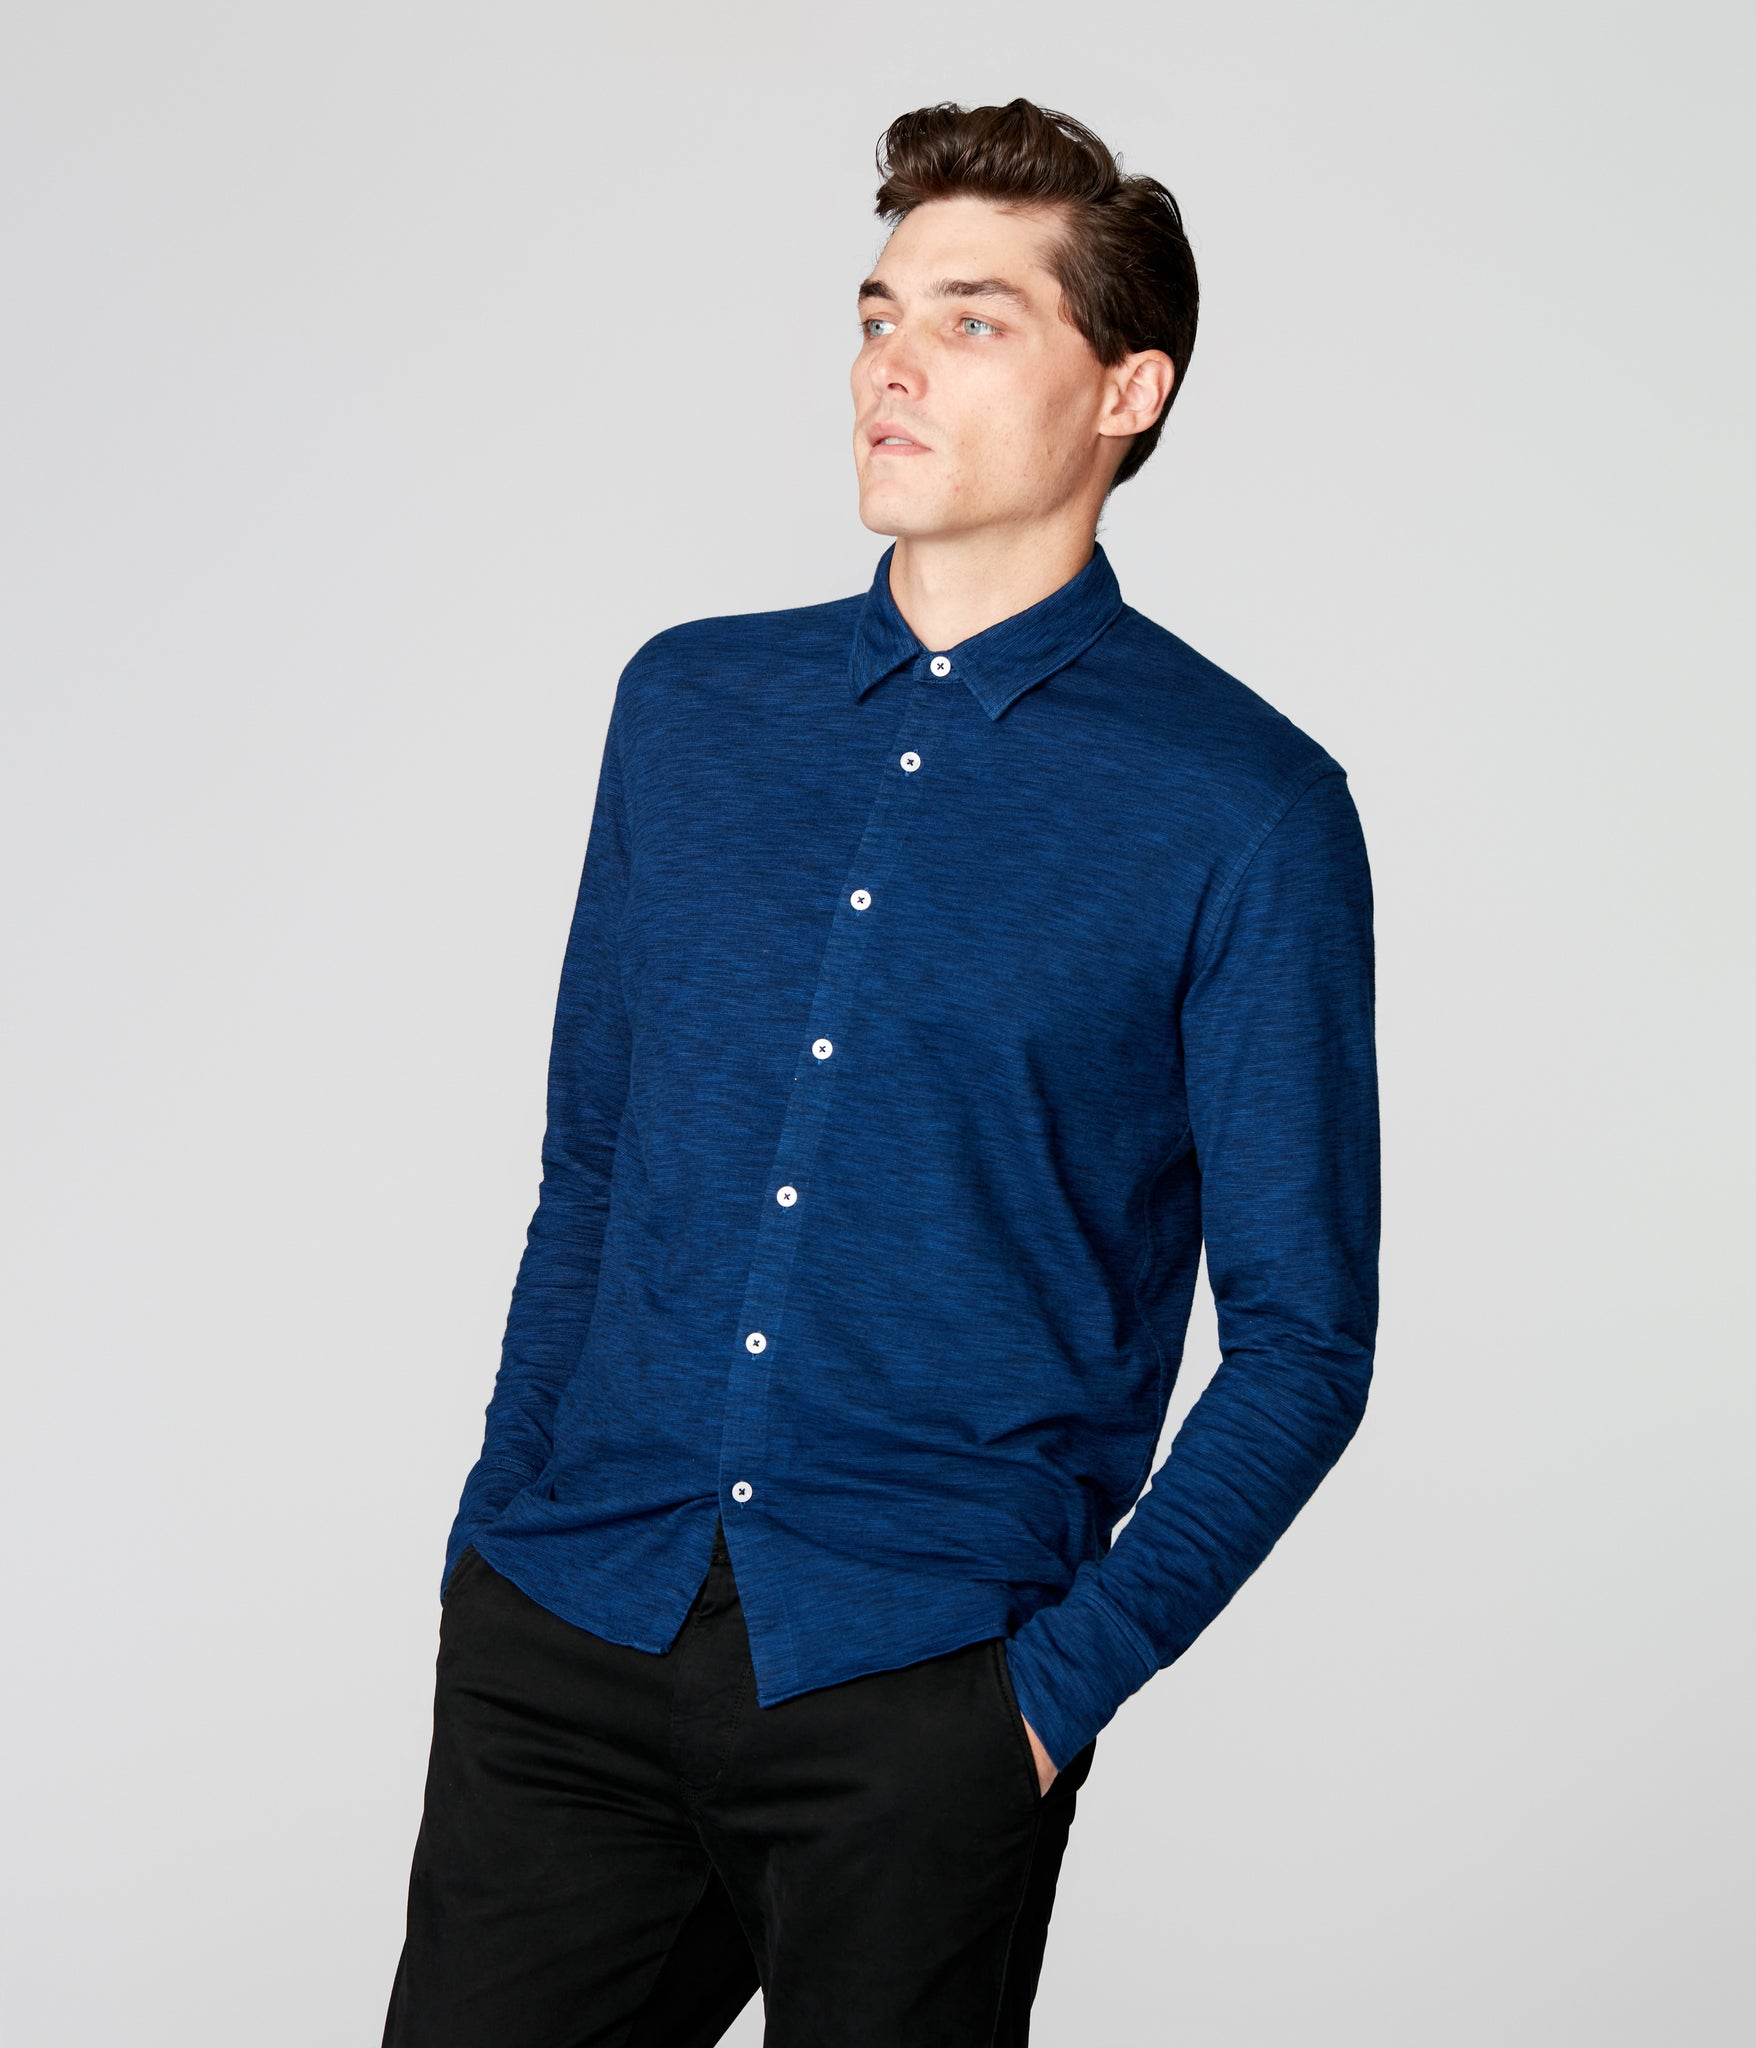 On-Point Soft Shirt in Black Marl Soft Slub - Blue